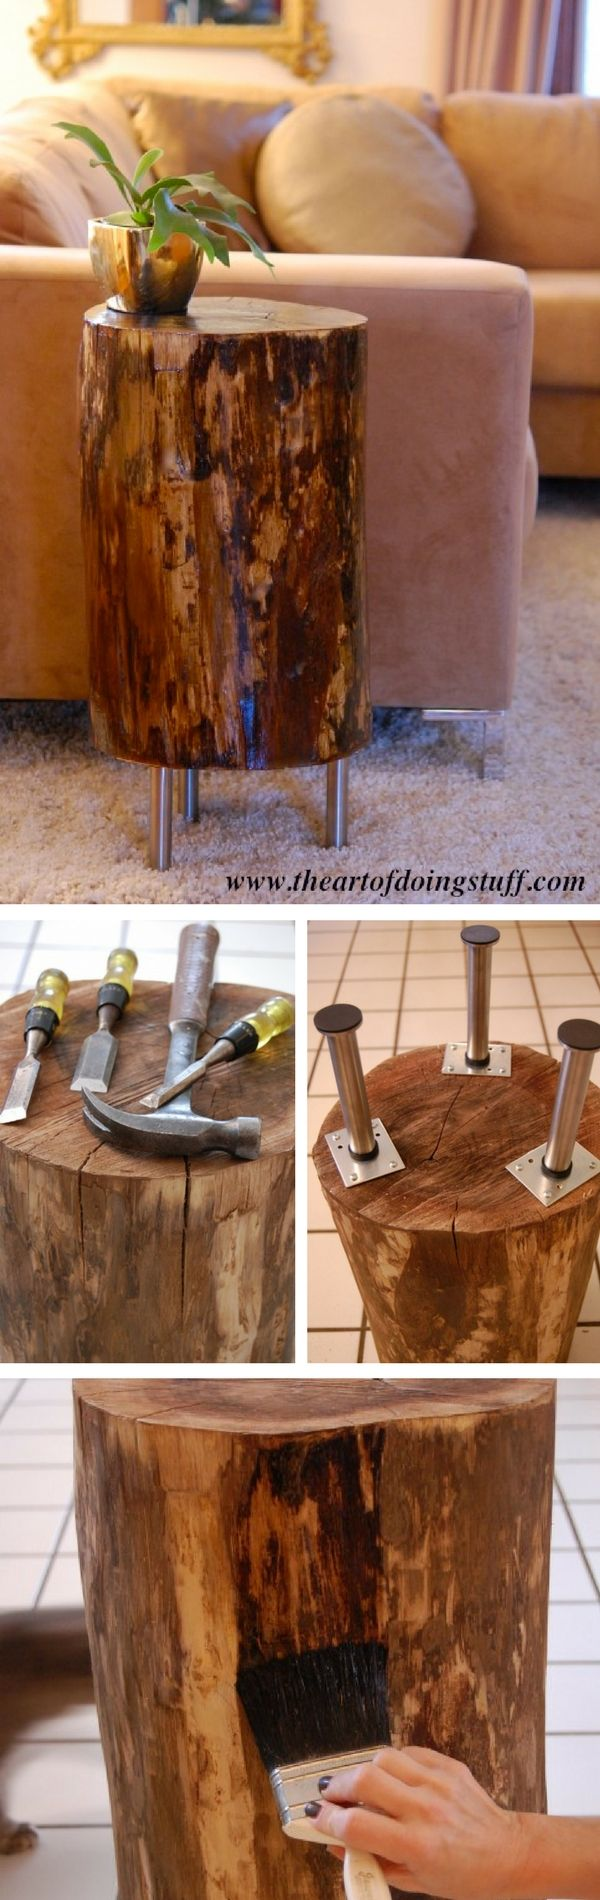 Best 25+ Tree furniture ideas on Pinterest | Tree stump furniture ...